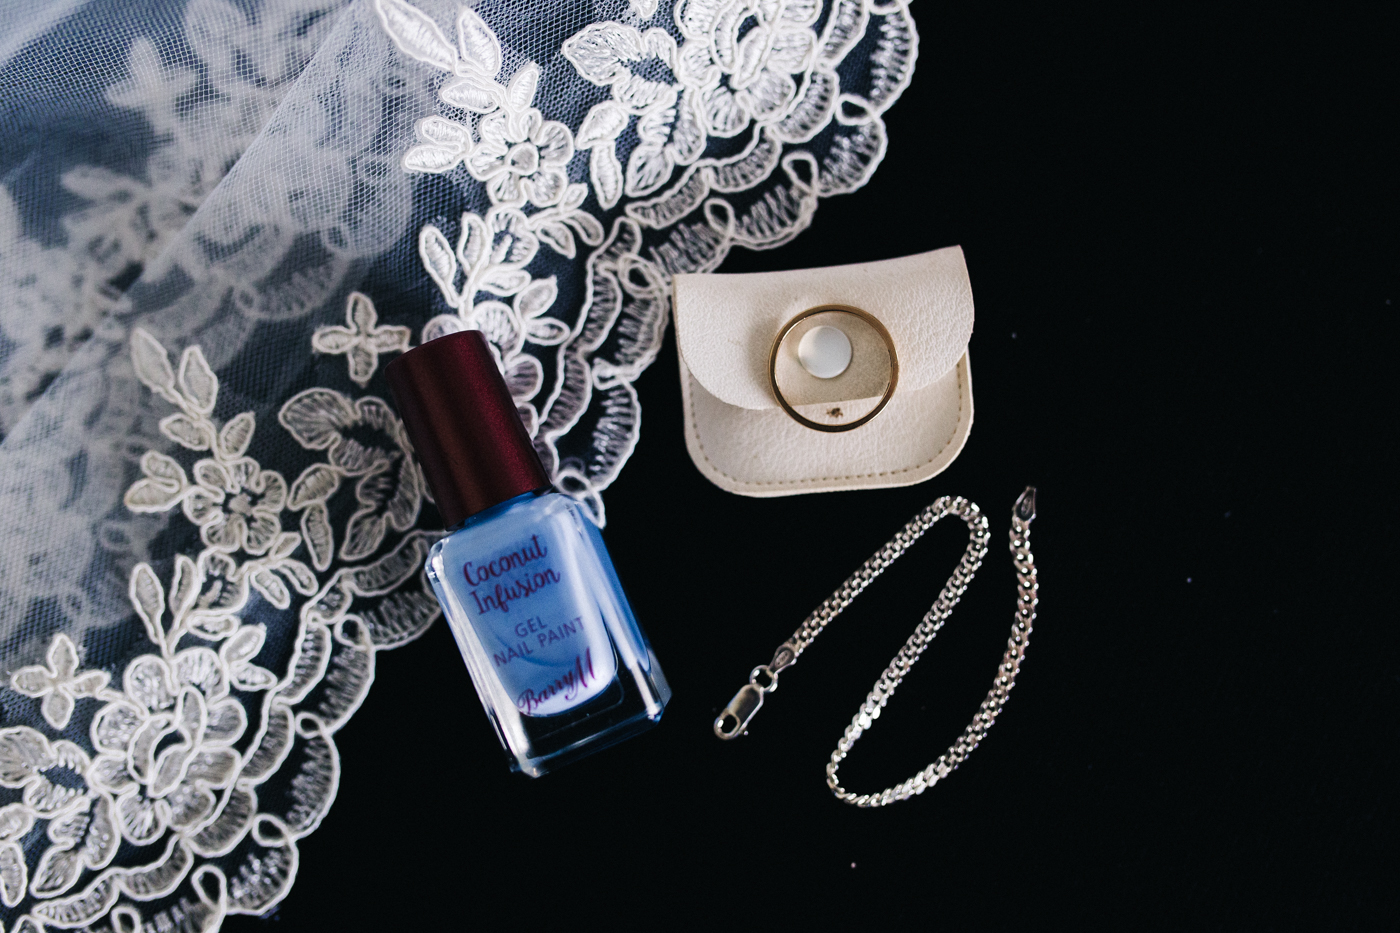 blue nail varnish, a wedding ring and a bracelet. relaxed teesside middlesbrough wedding photographer, wedding at home